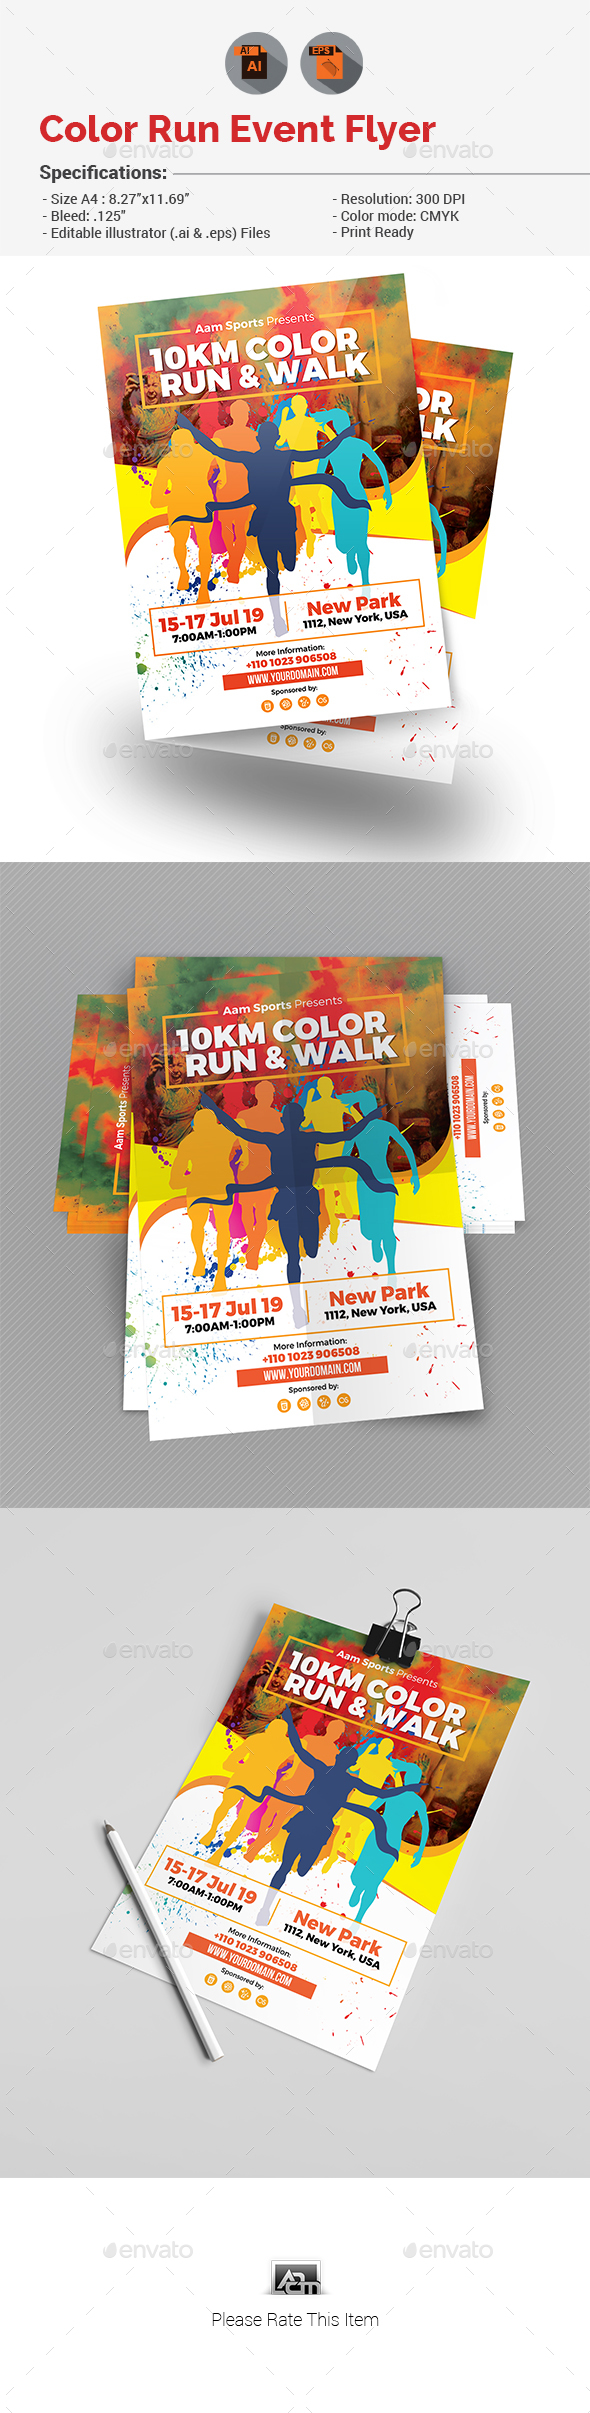 Color Run Event Flyer - Events Flyers